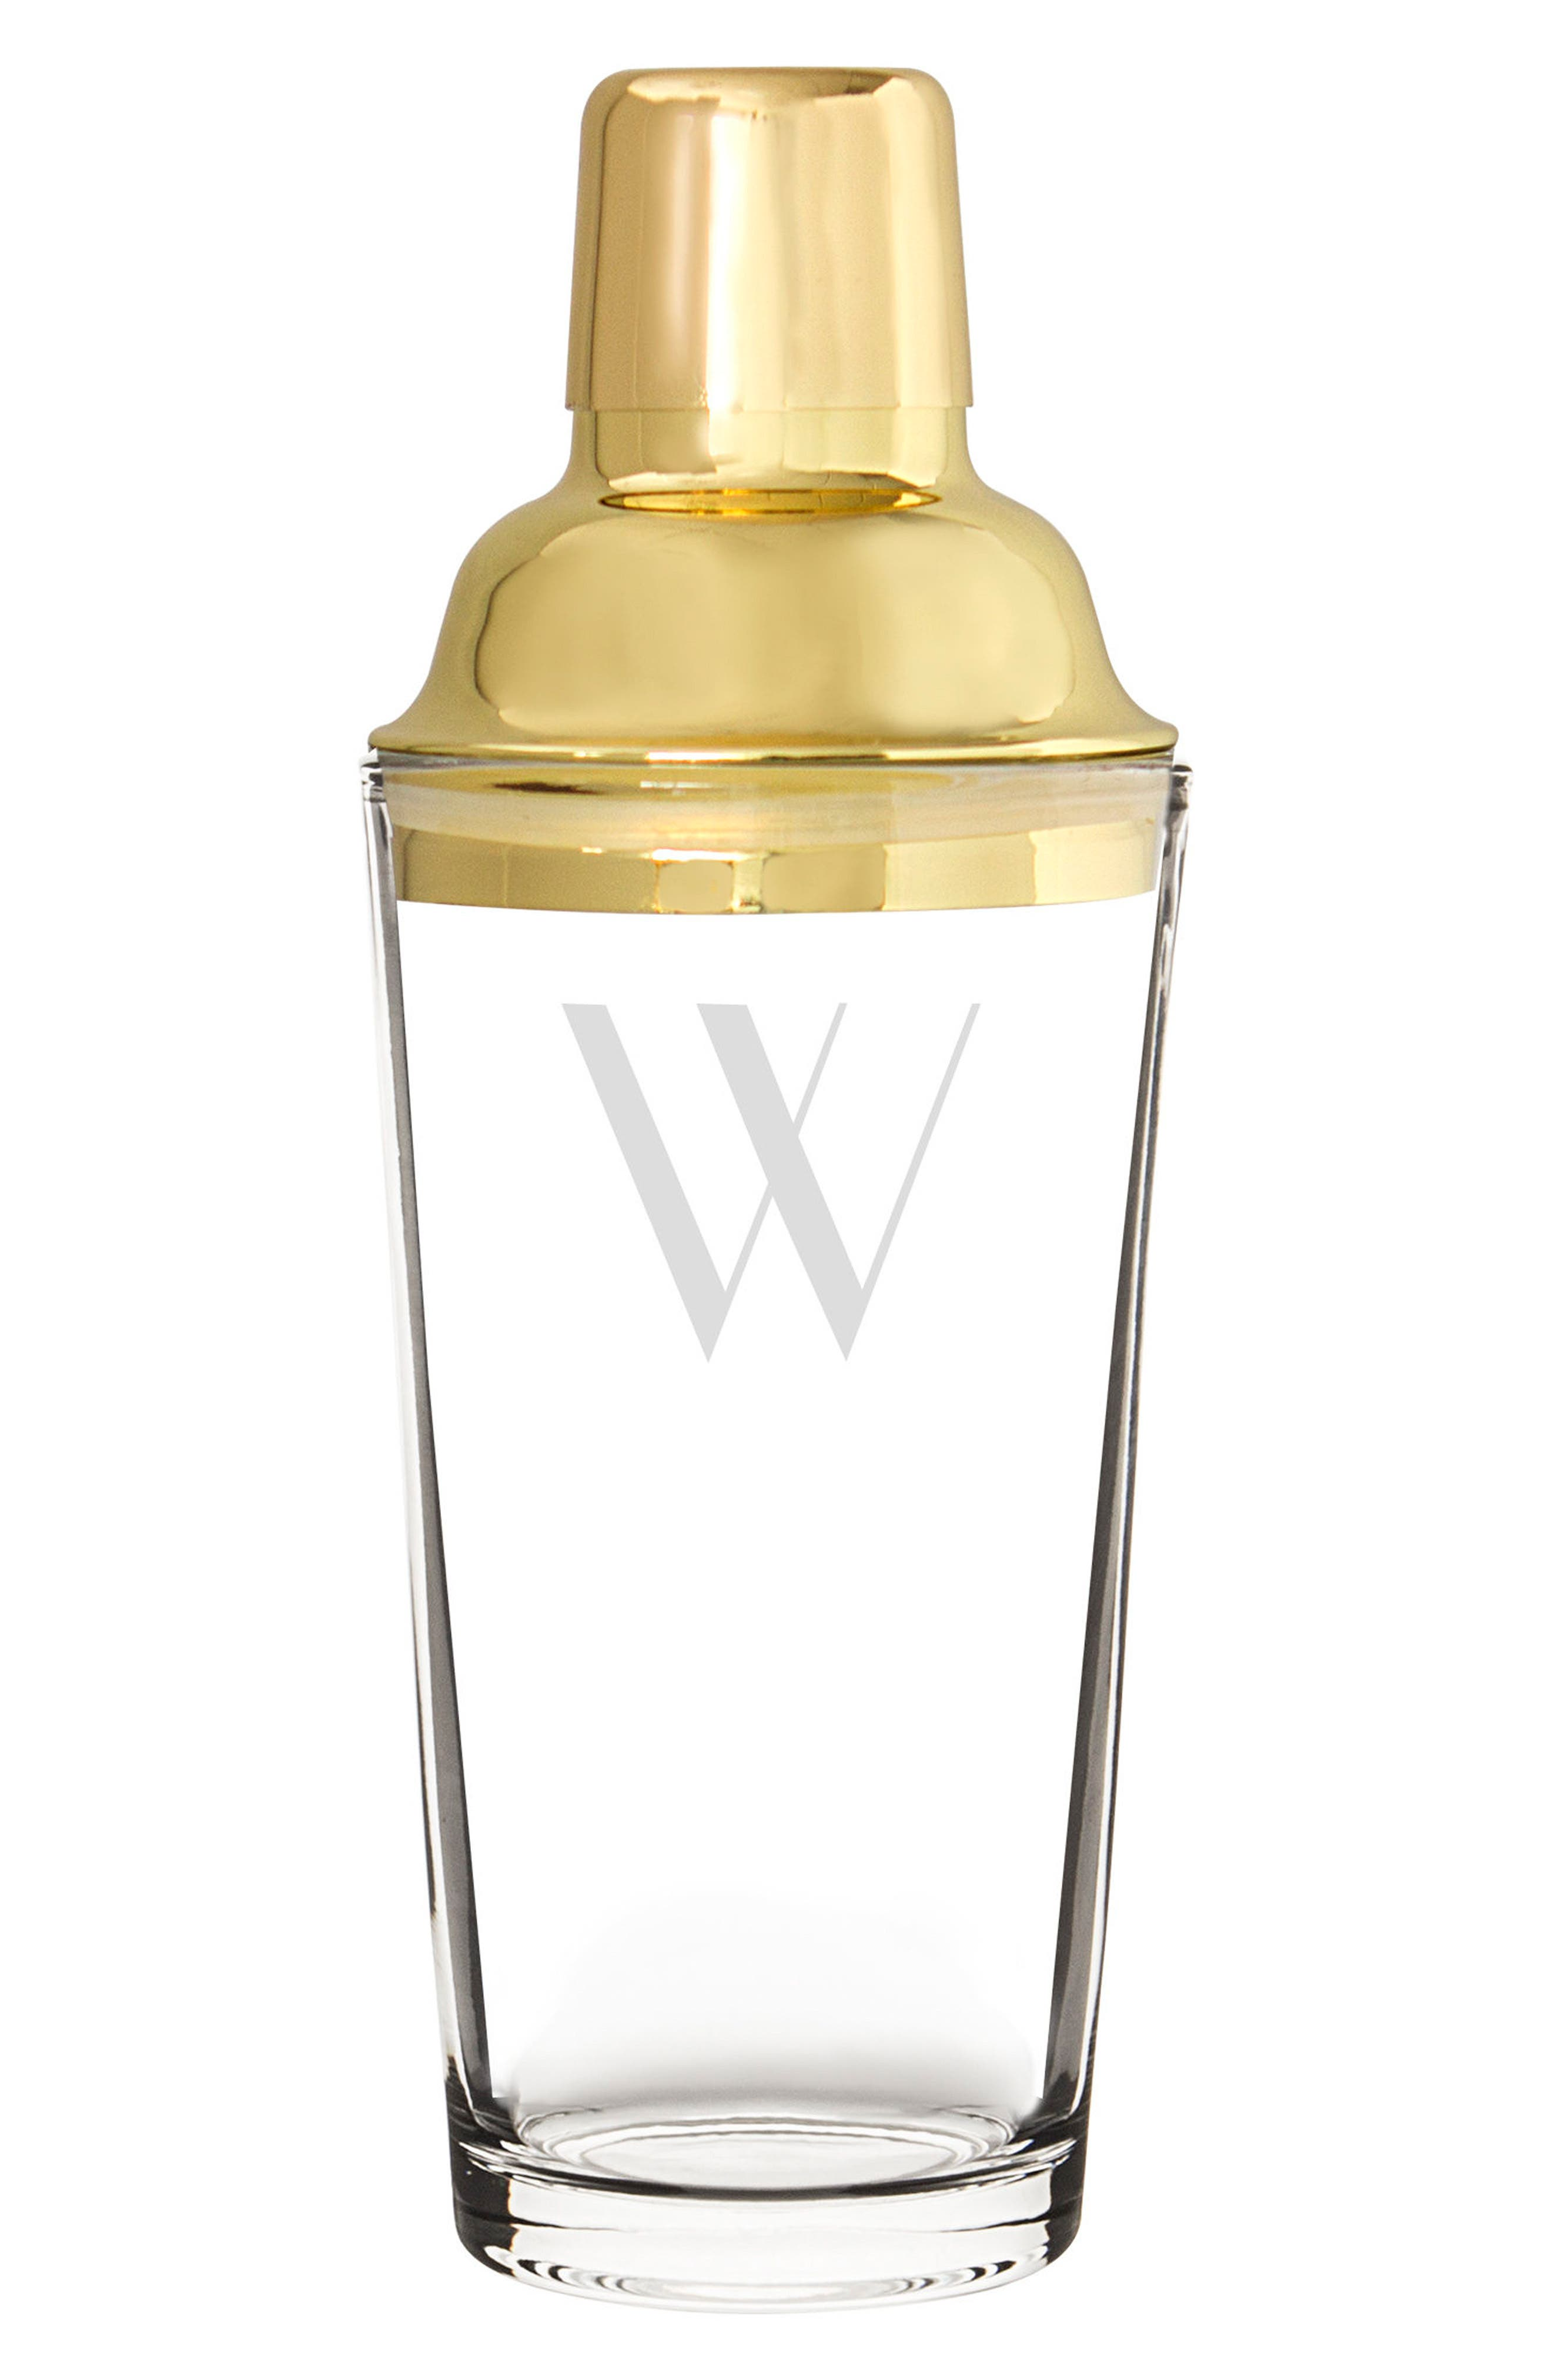 Main Image - Cathy's Concepts Monogram Goldtone Cocktail Shaker